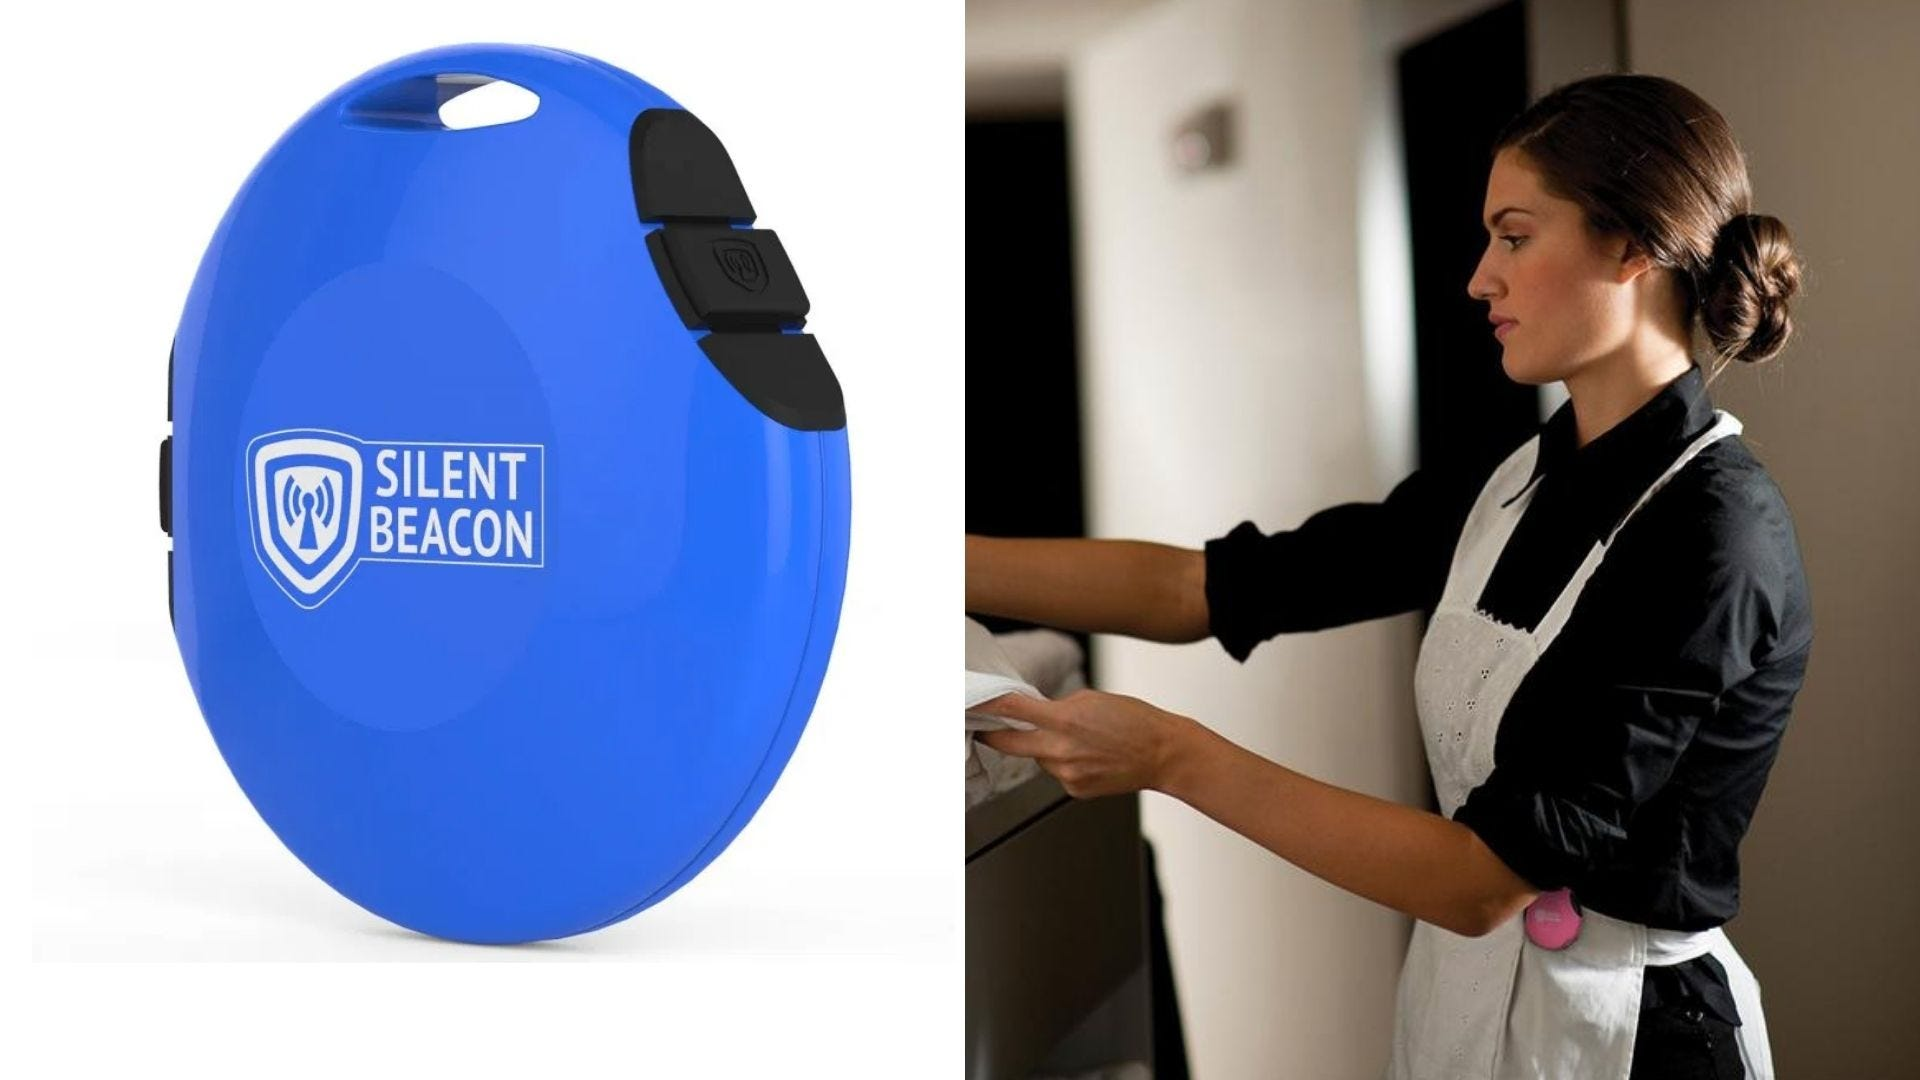 A round blue personal alarm and a woman in an apron works with the alarm on her hip